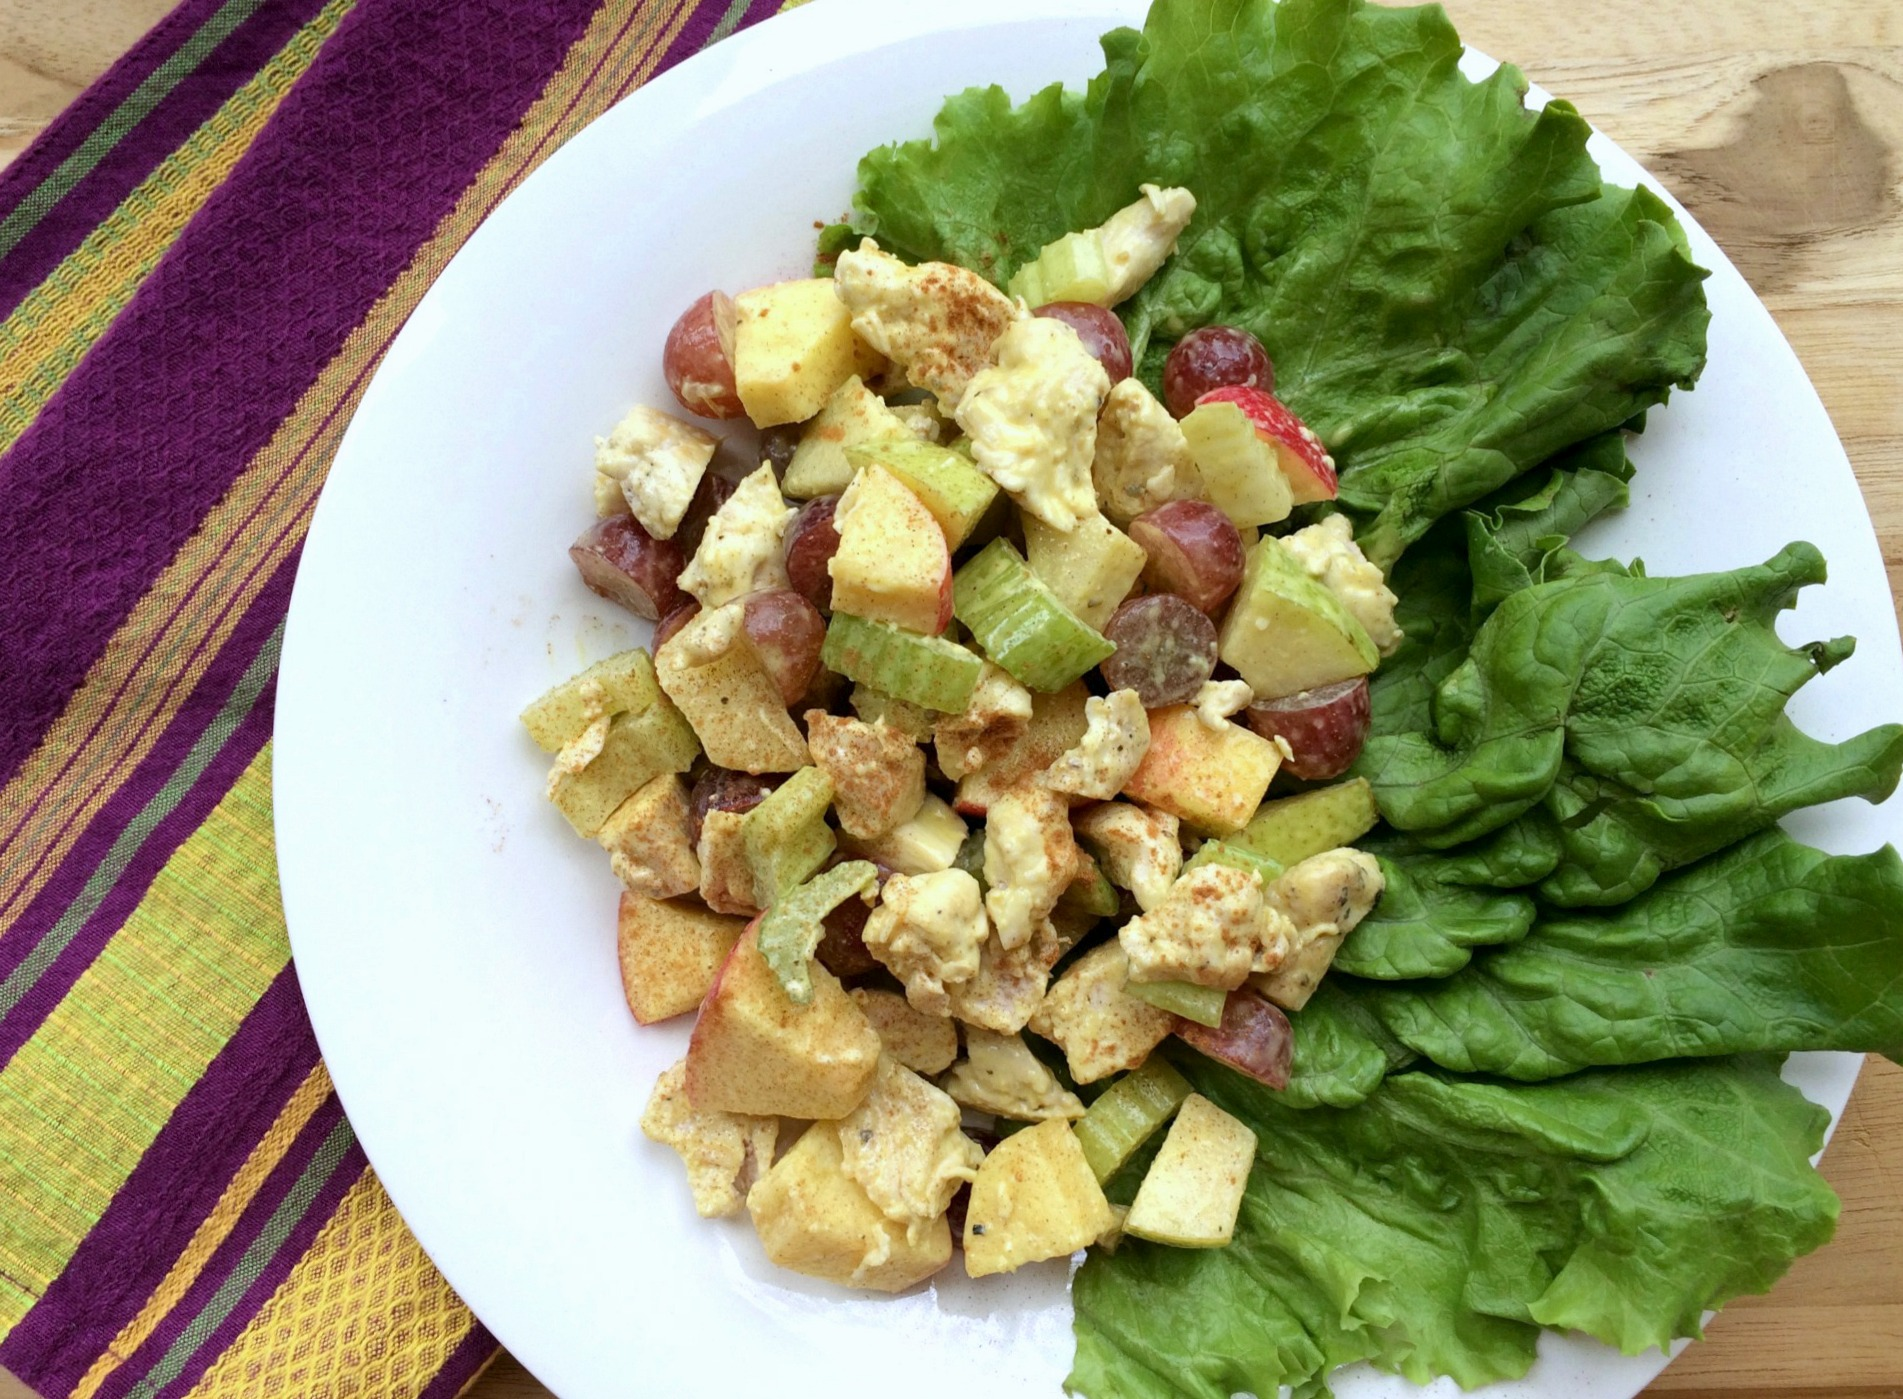 waldorf salad with homemade honey mustard dressing